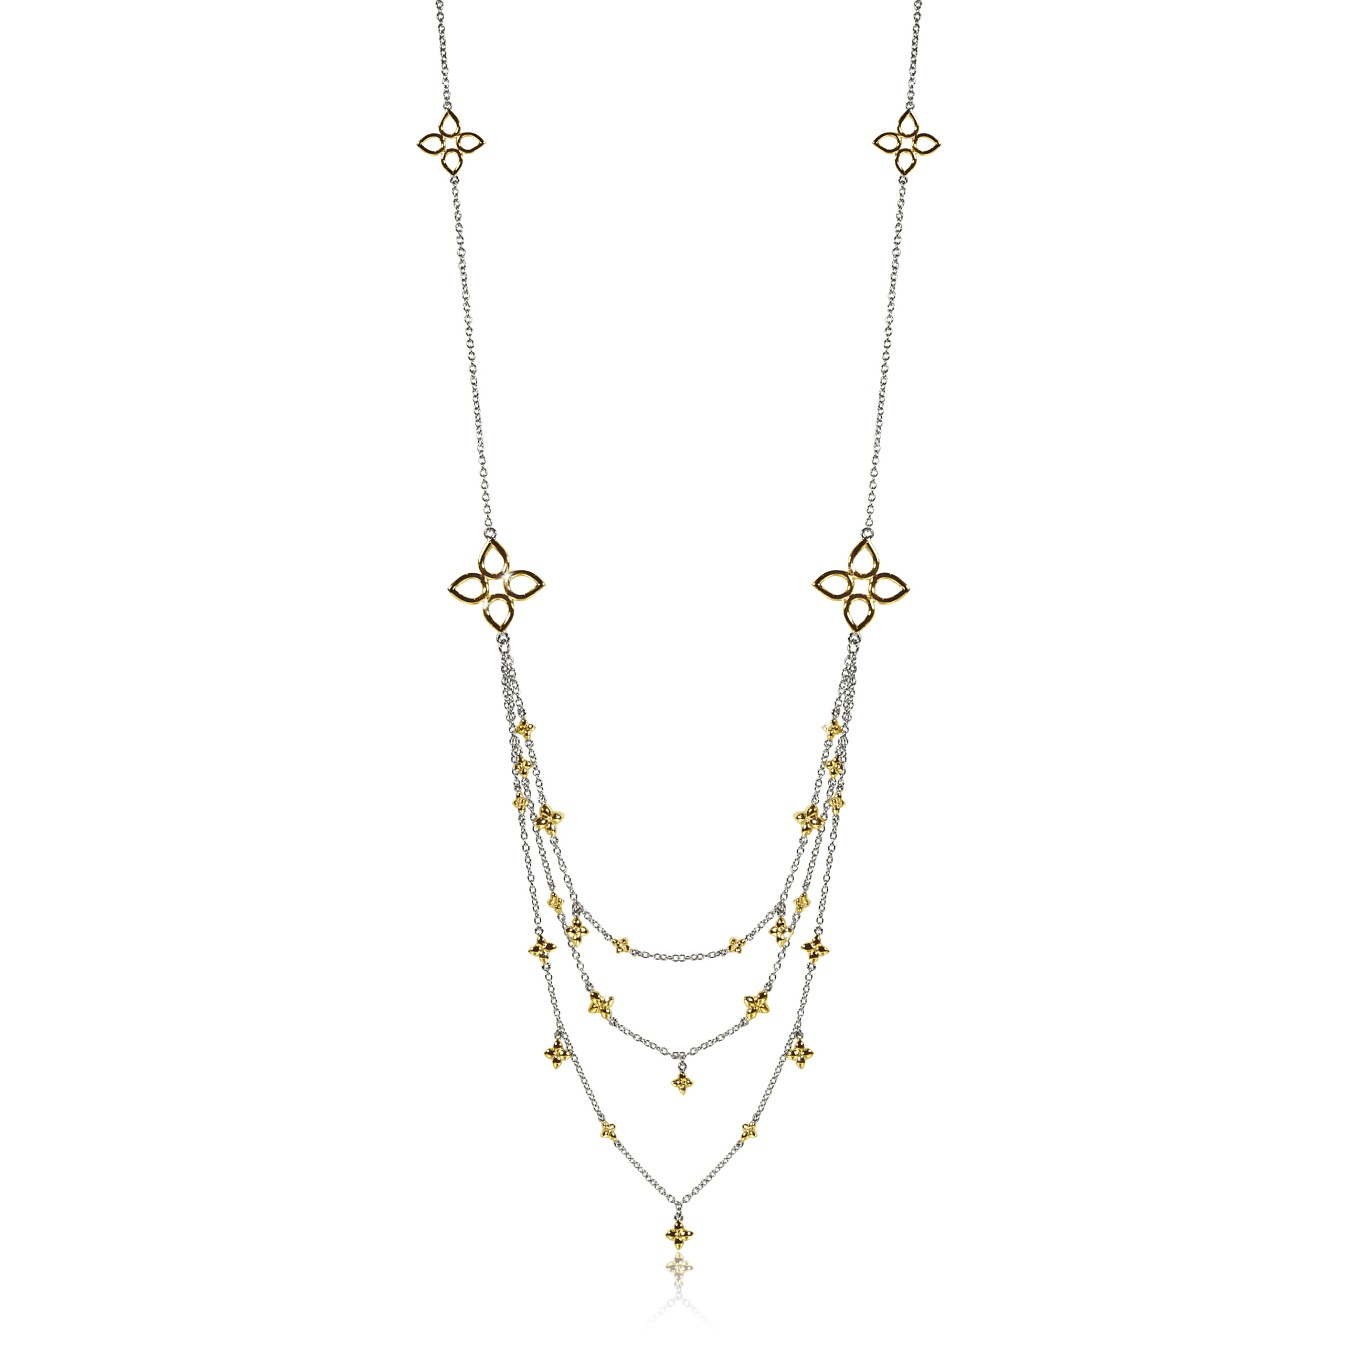 LAYERED THREE STRAND SEVILLA NECKLACE IN STERLING SILVER & GOLD